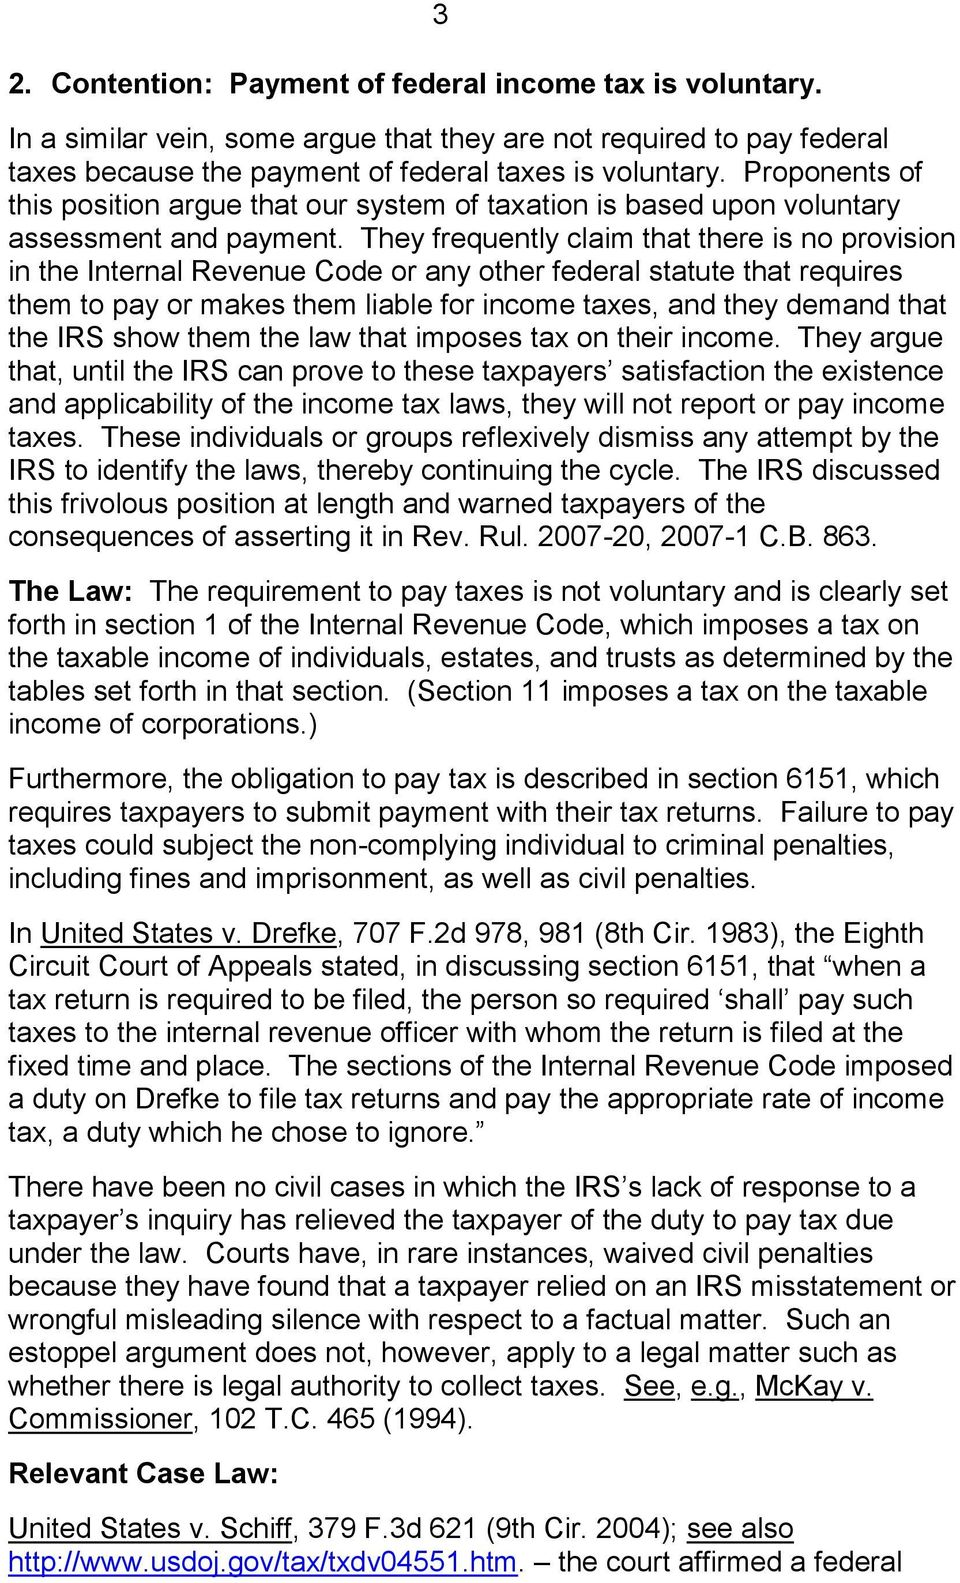 They frequently claim that there is no provision in the Internal Revenue Code or any other federal statute that requires them to pay or makes them liable for income taxes, and they demand that the